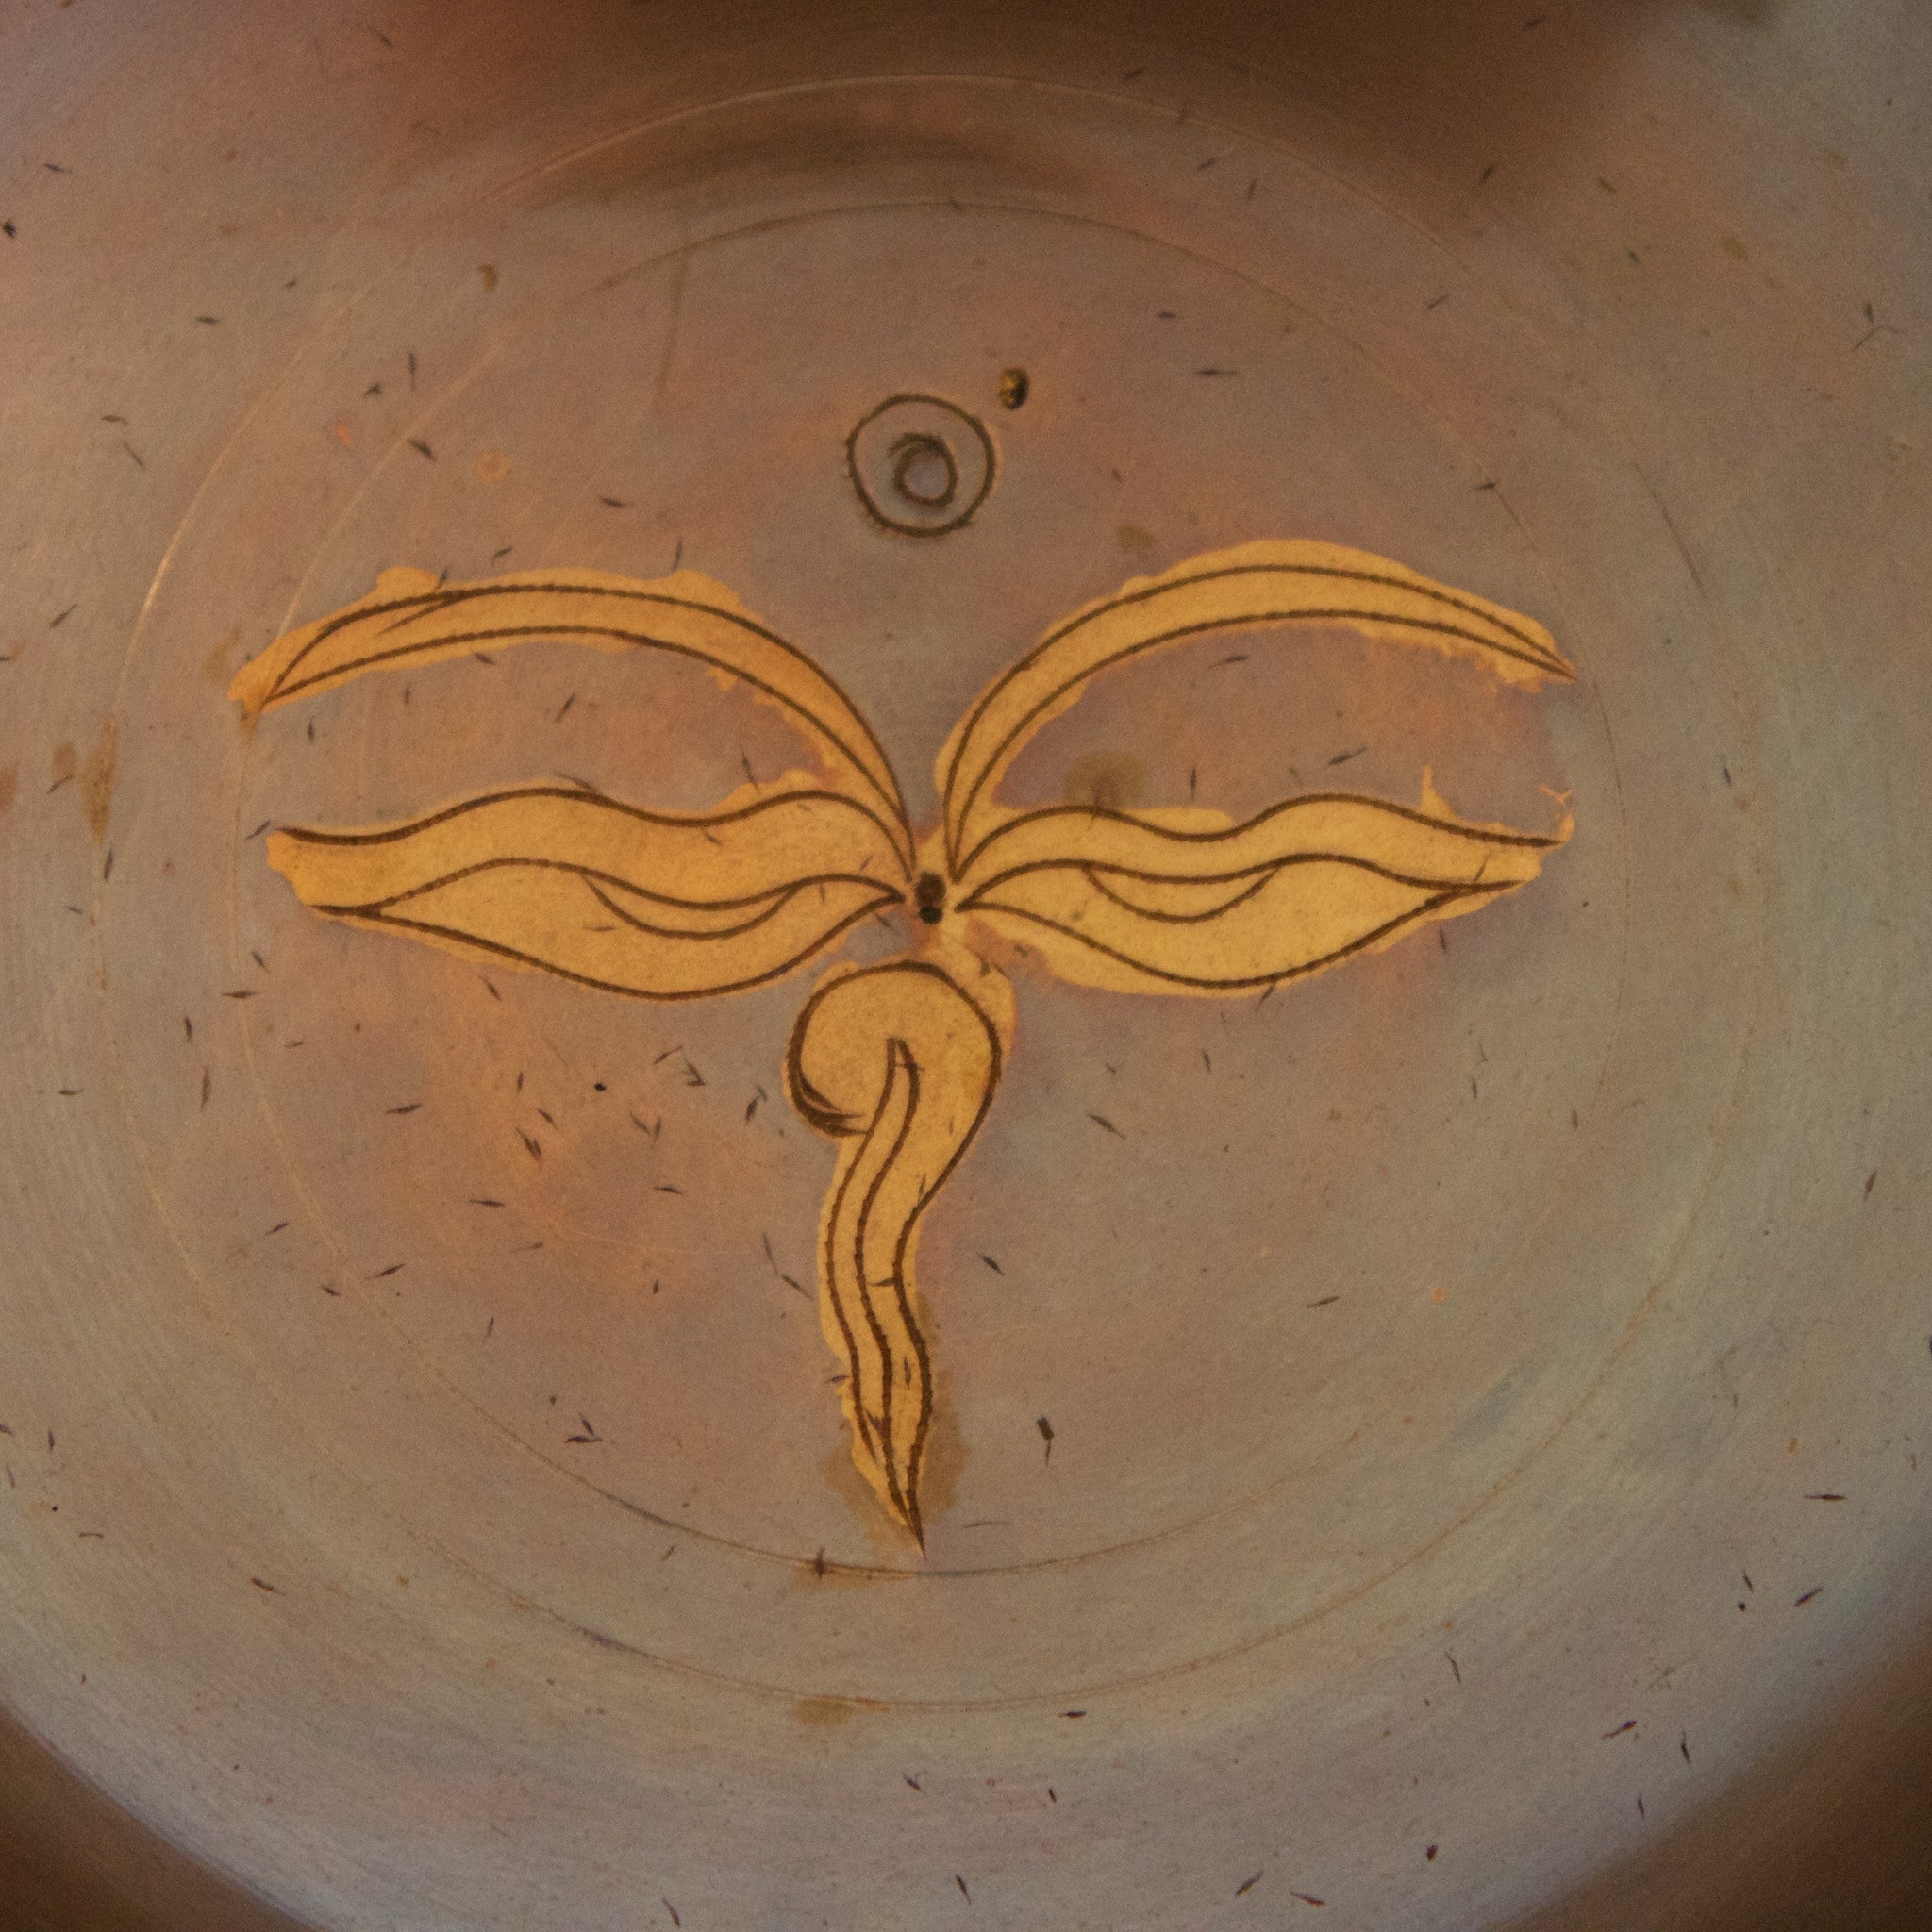 Stylised Bronze Singing Bowl with lotus flower or buddha eyes detail